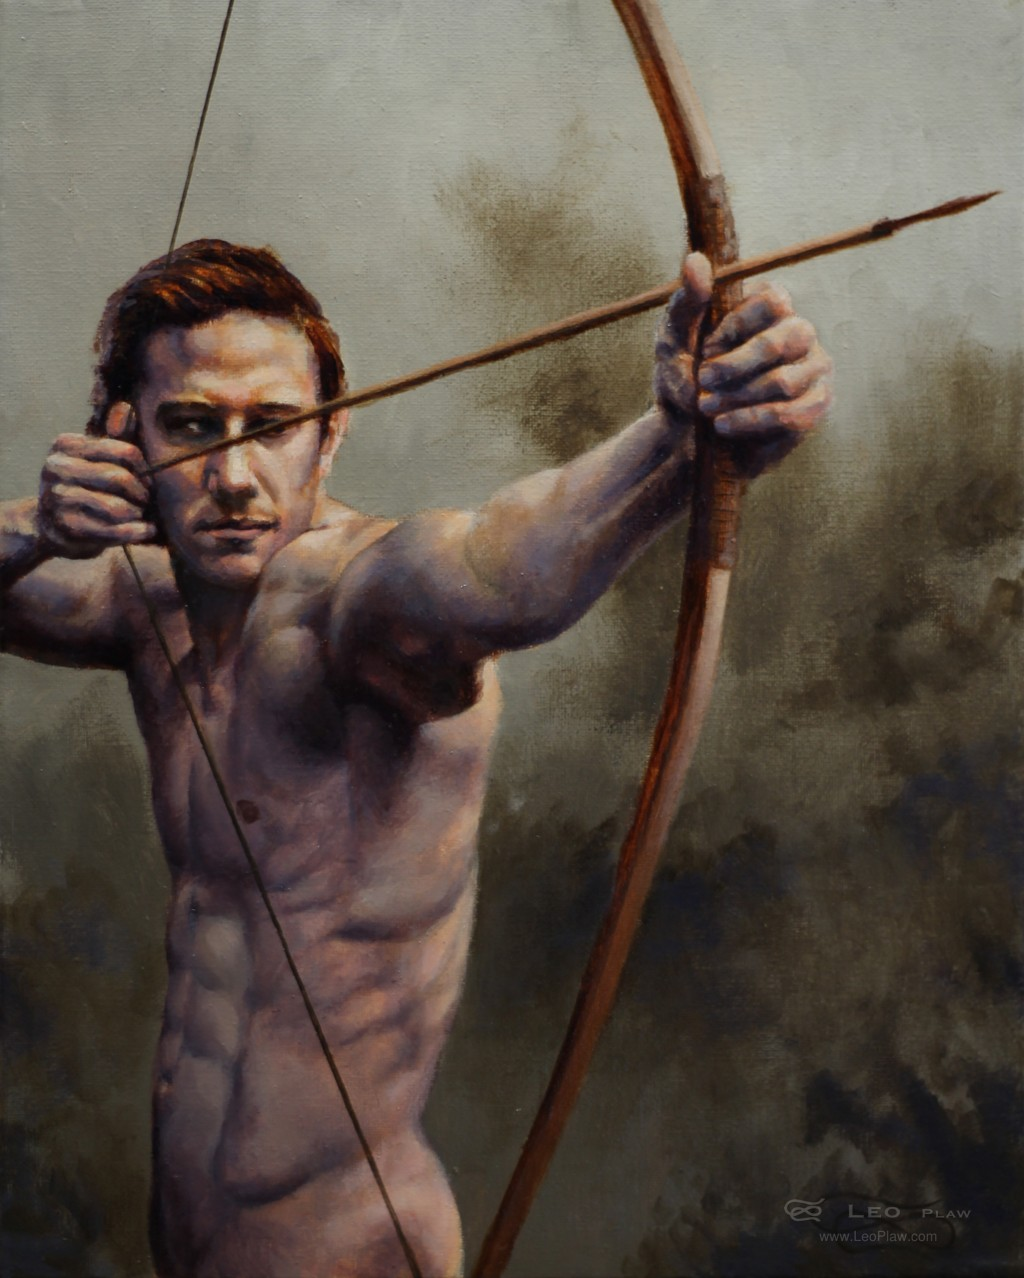 """The Archer"", Leo Plaw, 24x30cm, oil on canvas"